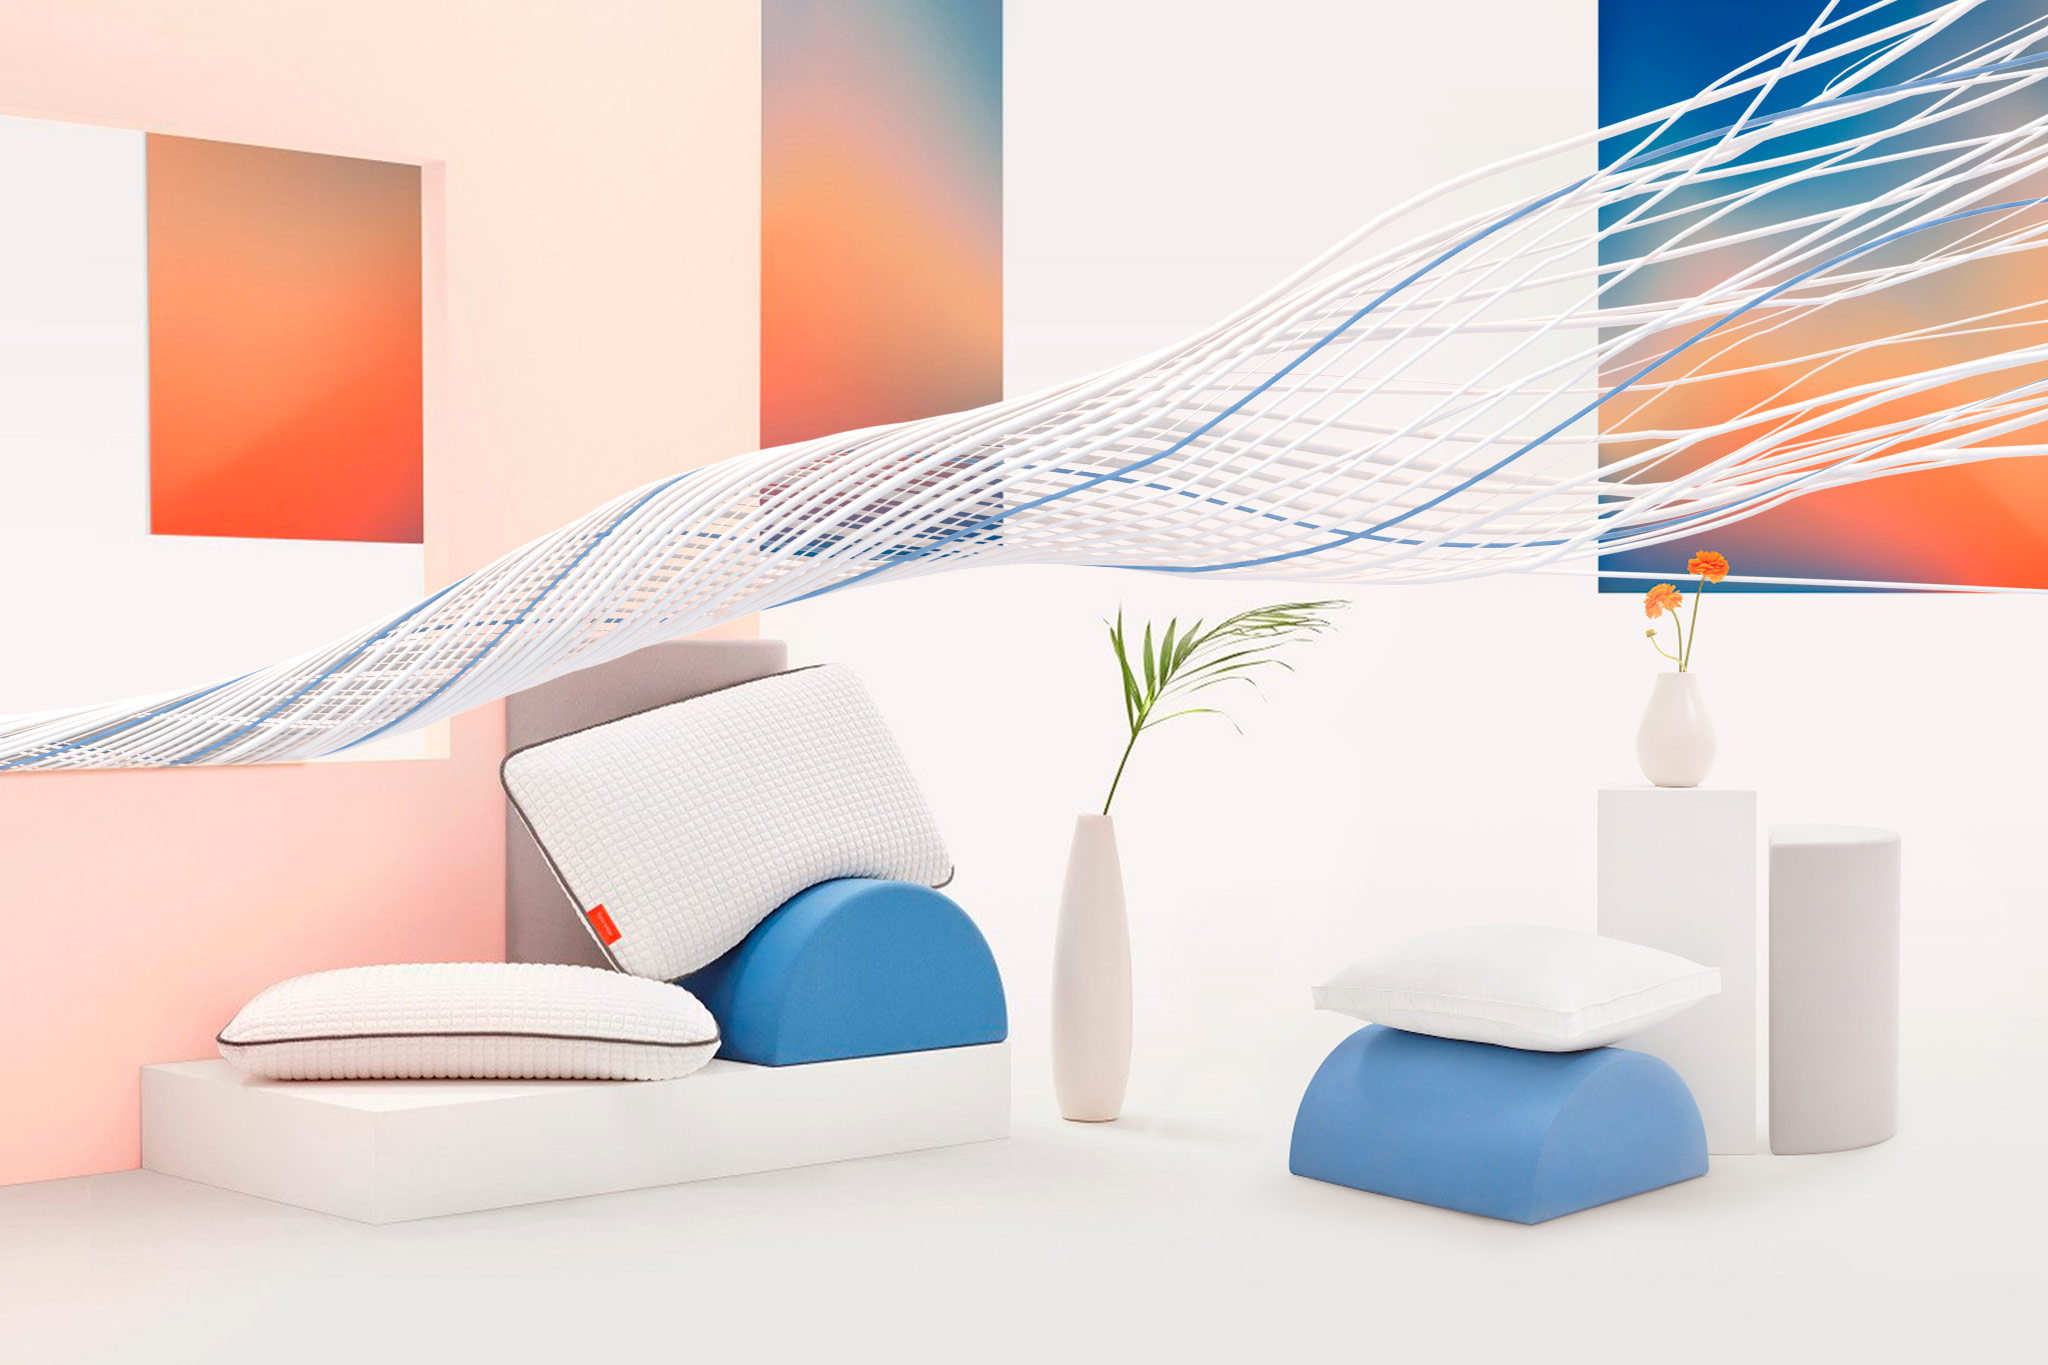 Tomorrow Sleep Memory Foam Pillows